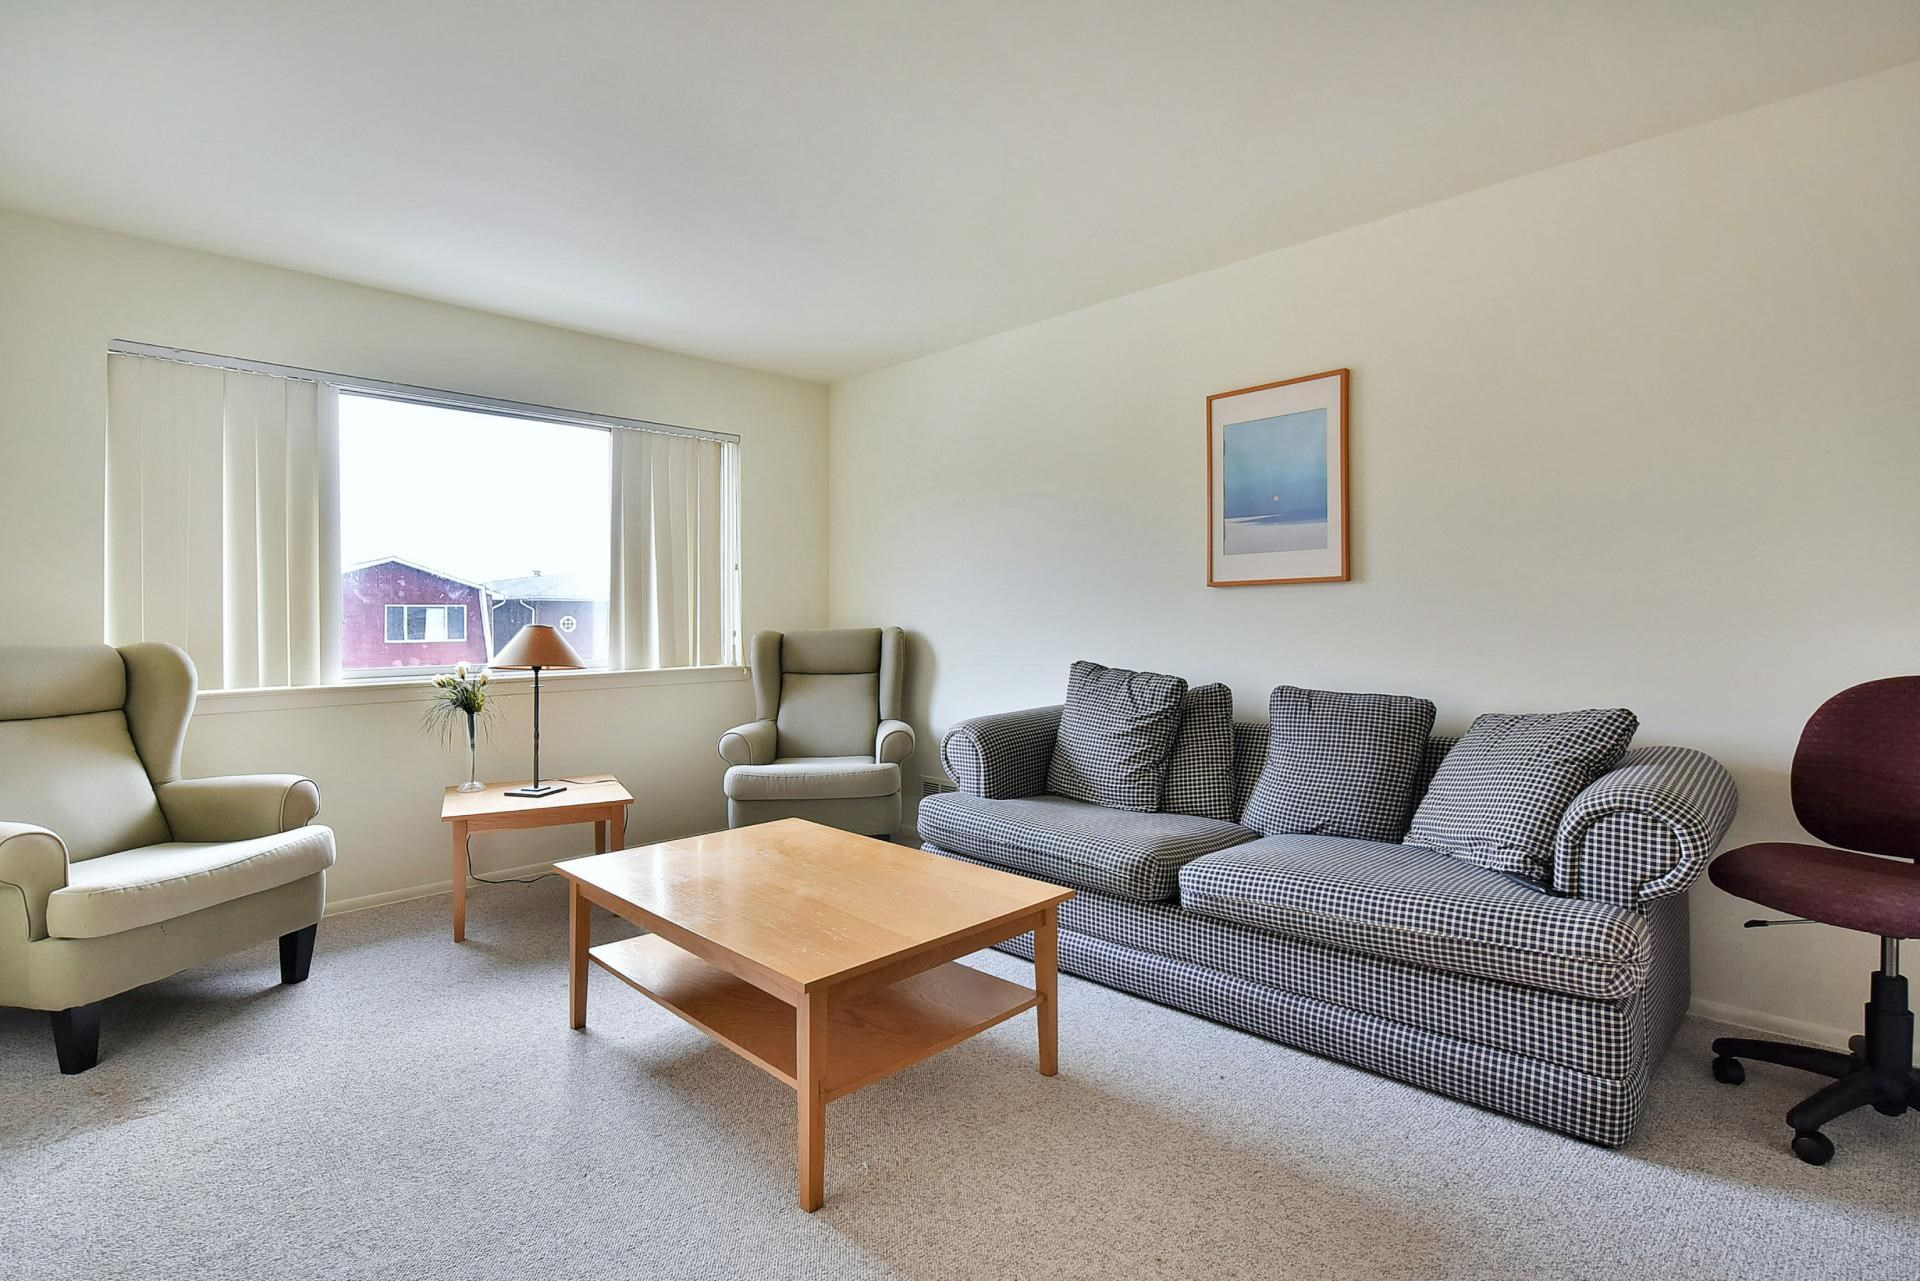 2-bed/2-bath, Apartment Available W/ Large Living Room, Walk To ...